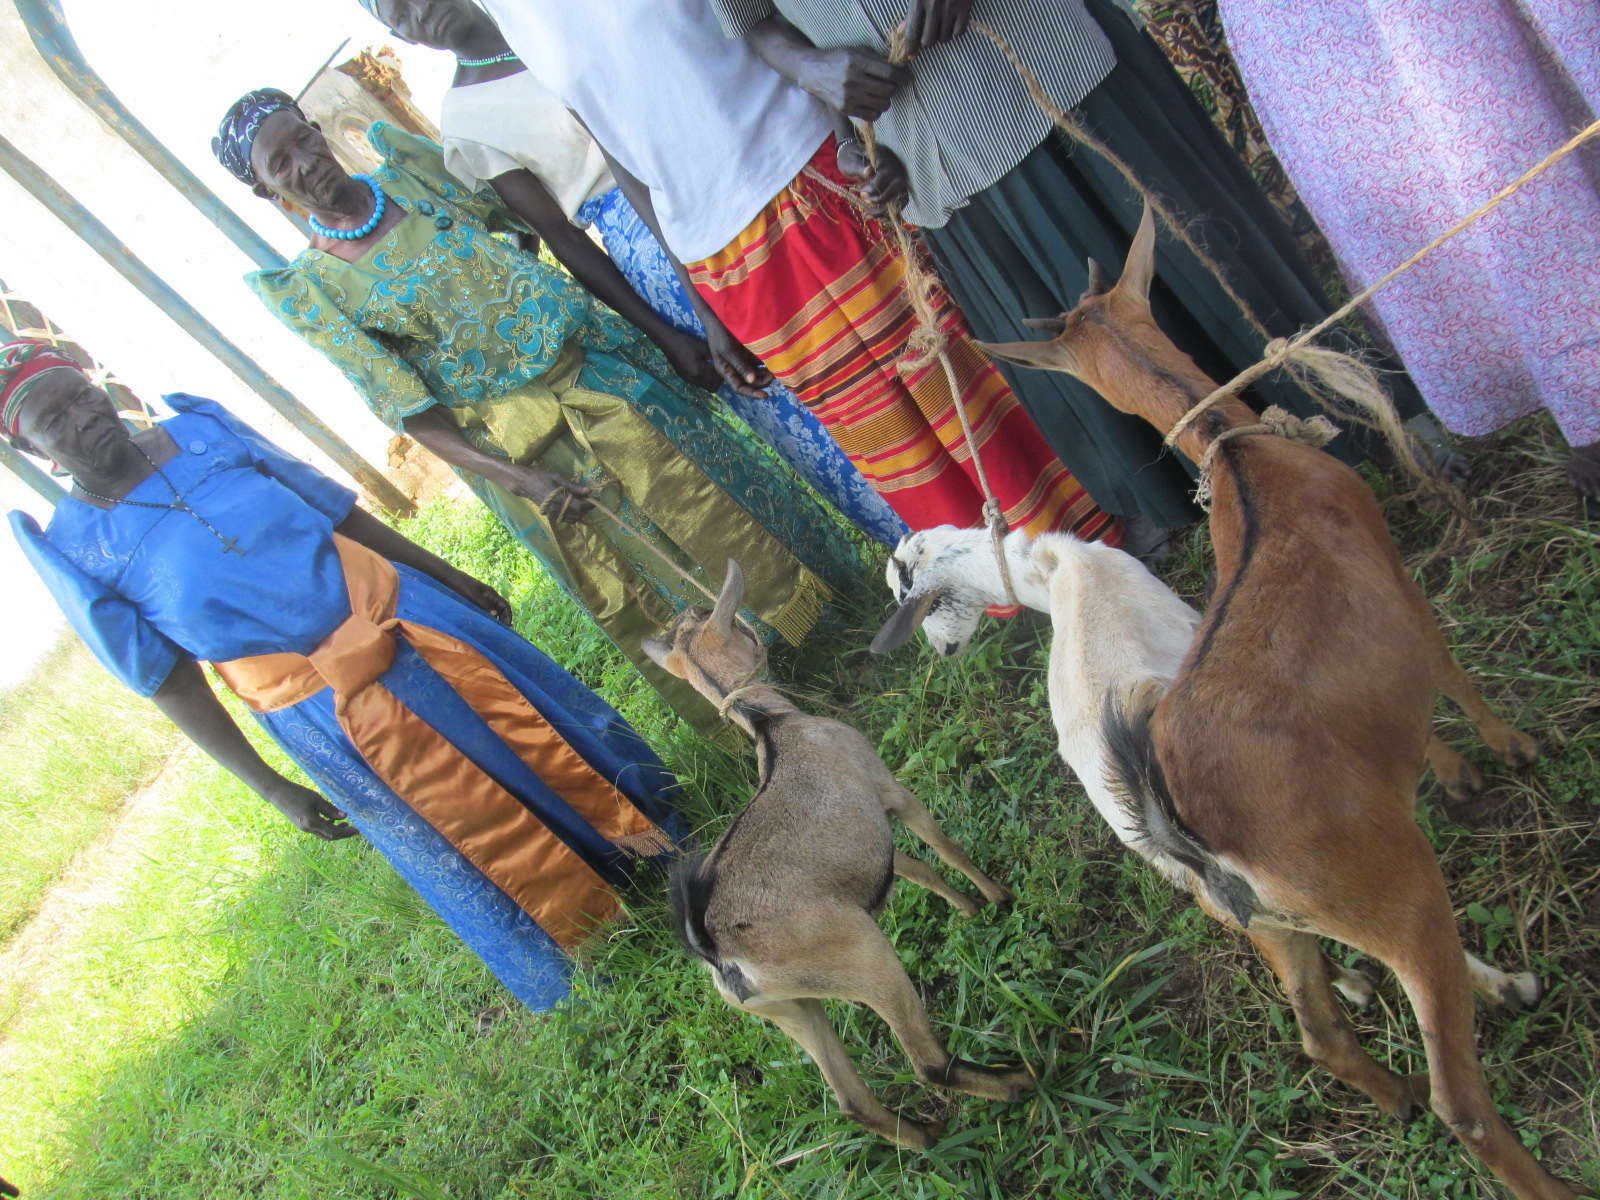 10 goats were gifted to the Village of Paicho, a special Christmas for the families who received them!